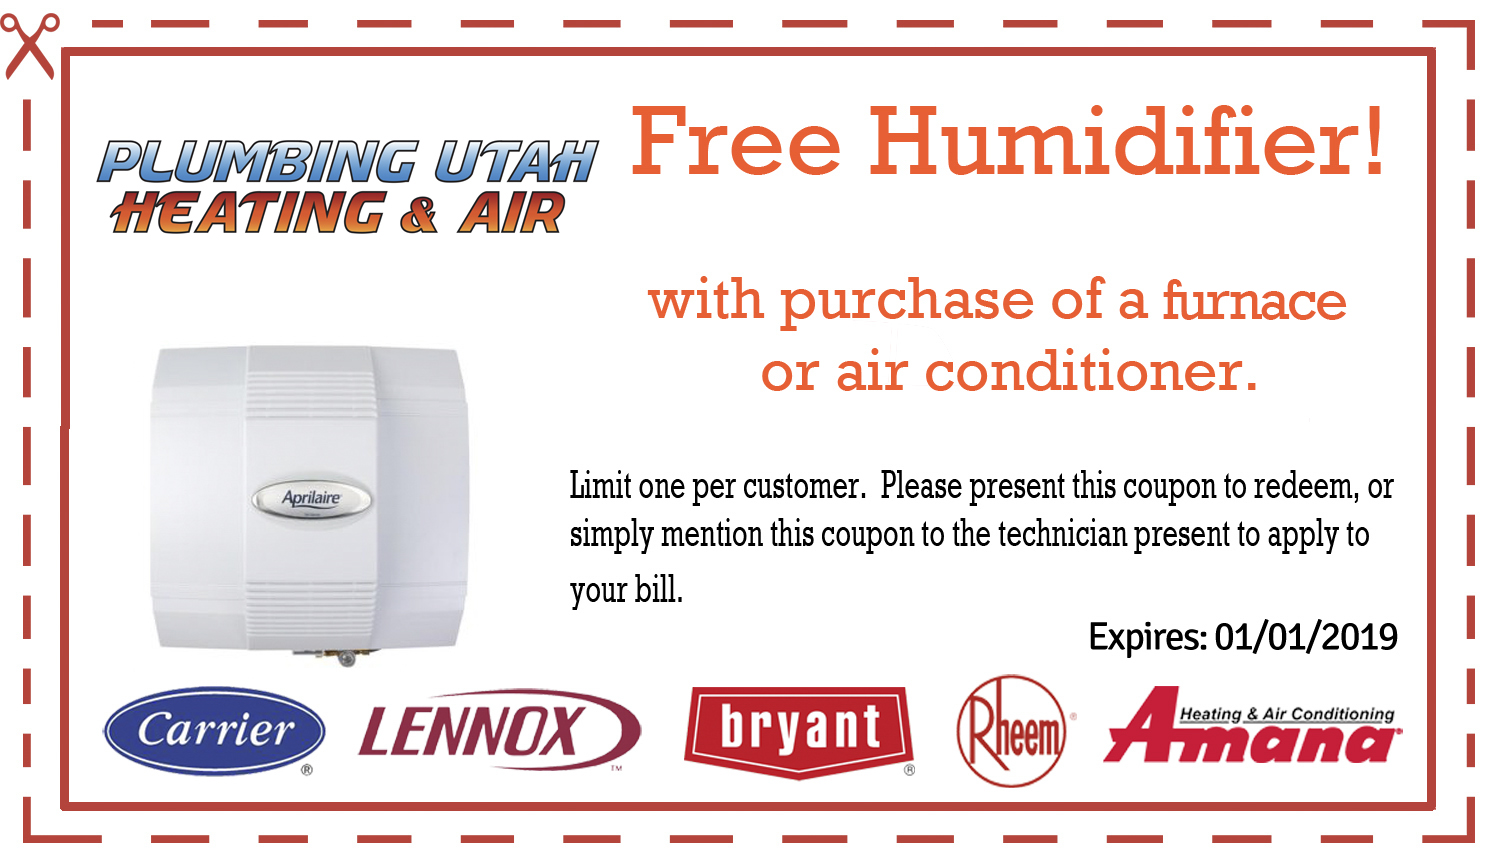 plumbing-utah-heating-air-free-humidifier